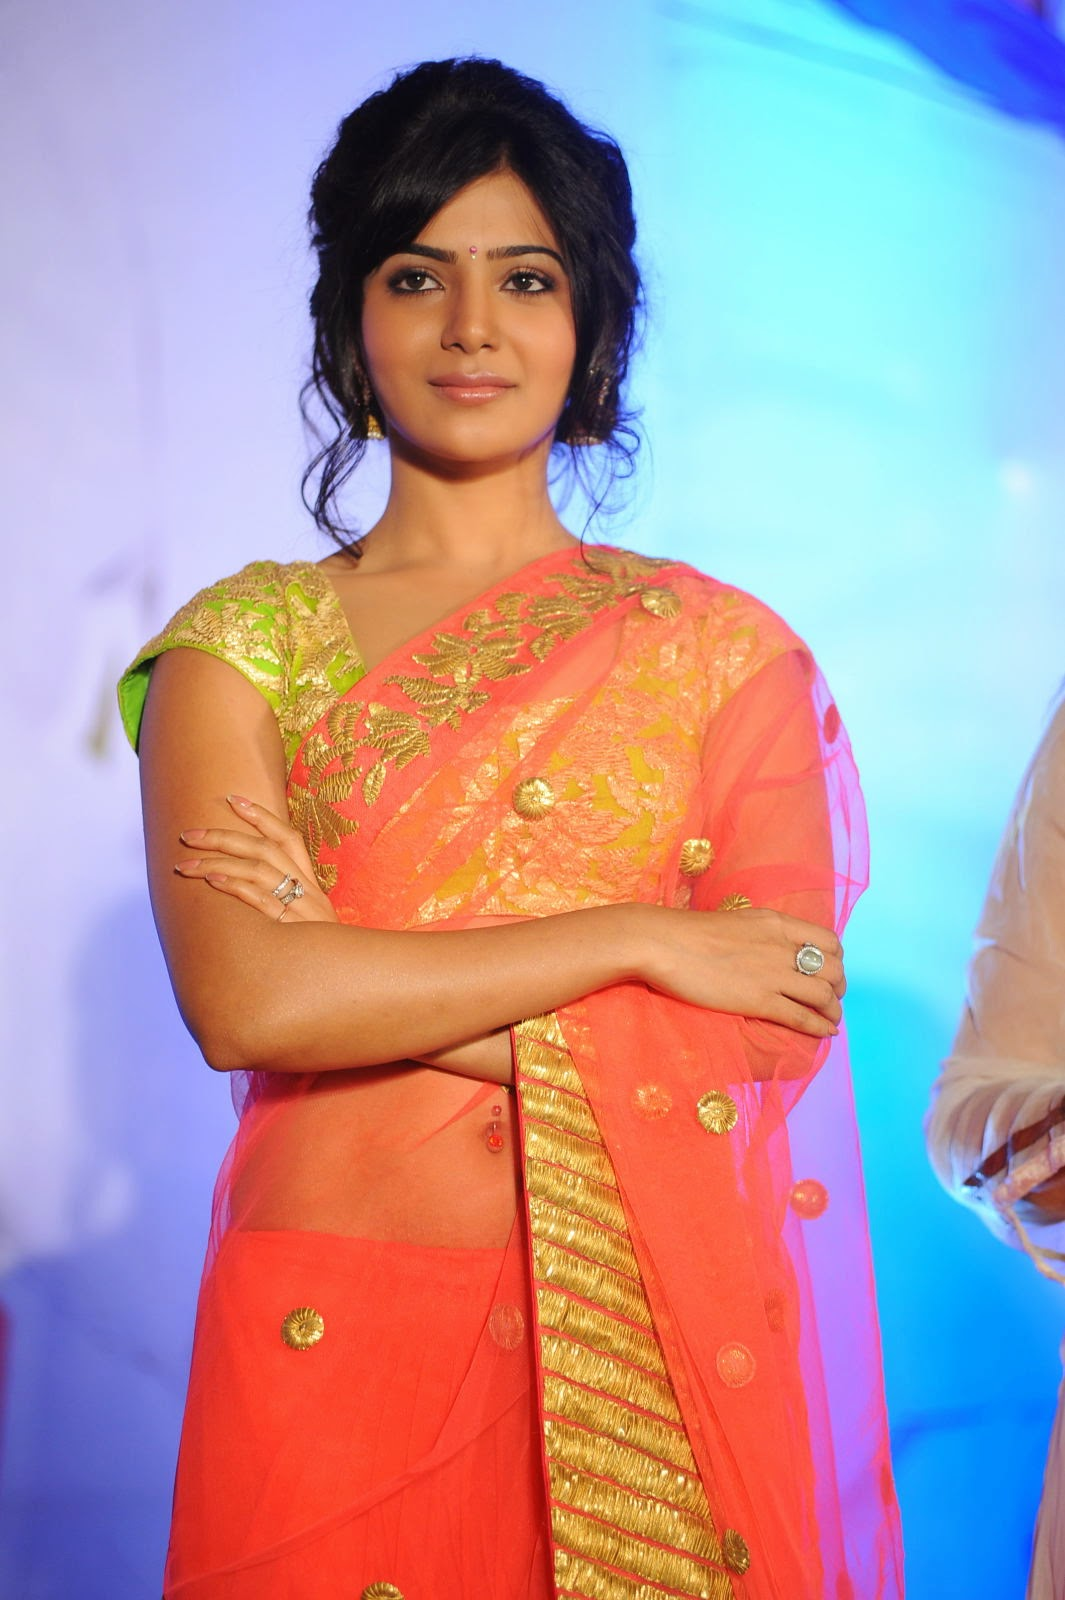 Actress hd gallery samantha cute saree hd hot photo galleryz email thisblogthis altavistaventures Image collections